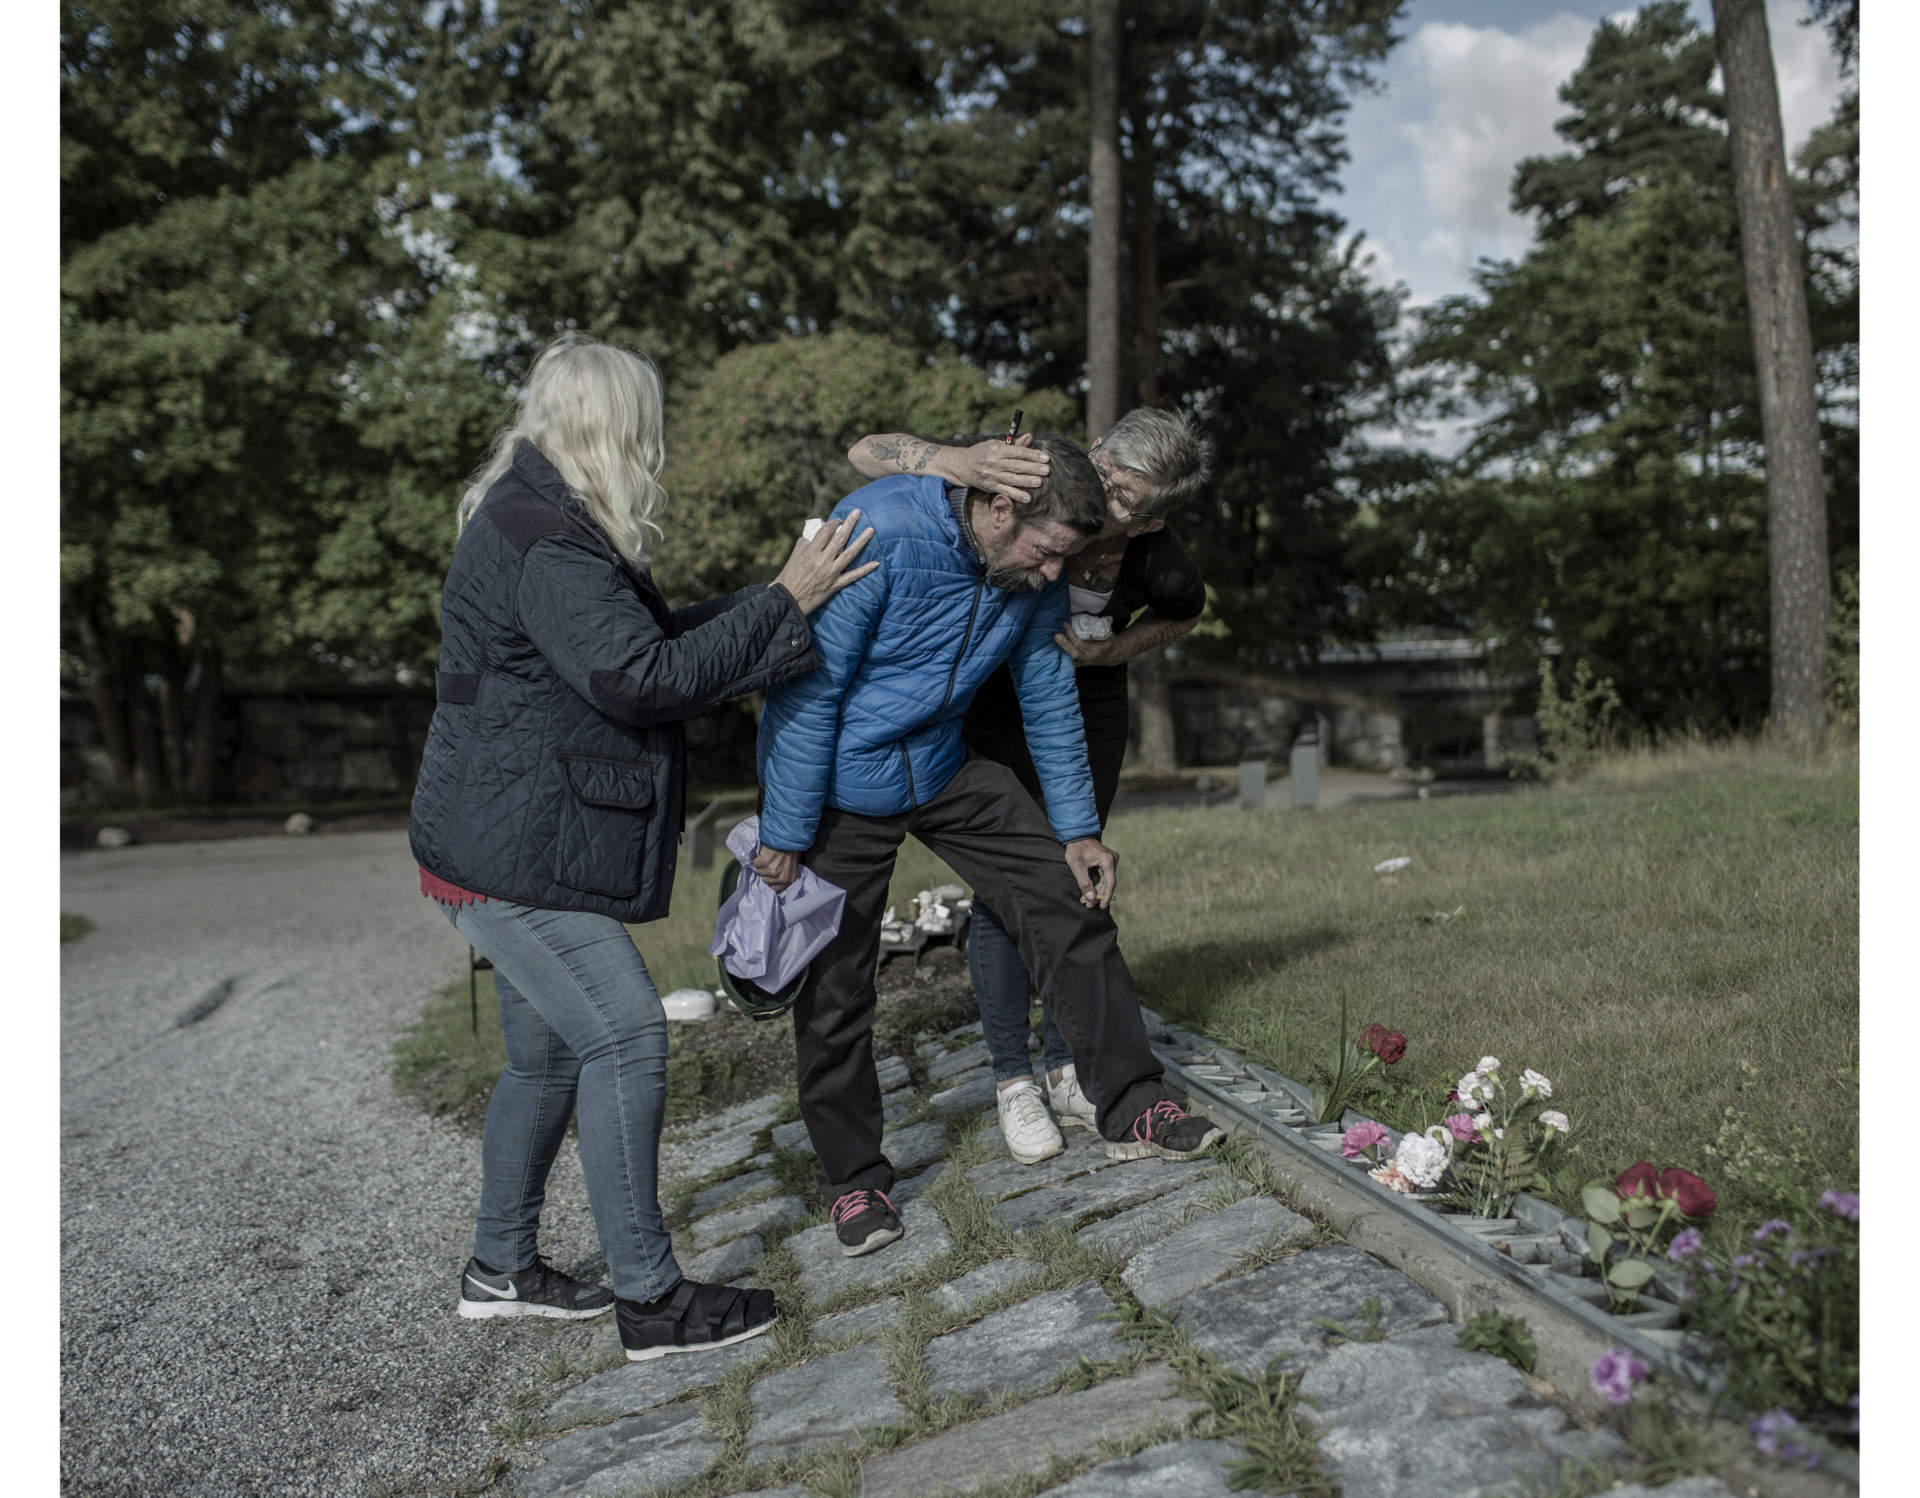 Pekka is dead. Matte is comforted by friends as he visits a memorial to give a flower to his best friend Pekka. Tears are running down his face. He has difficulty standing up